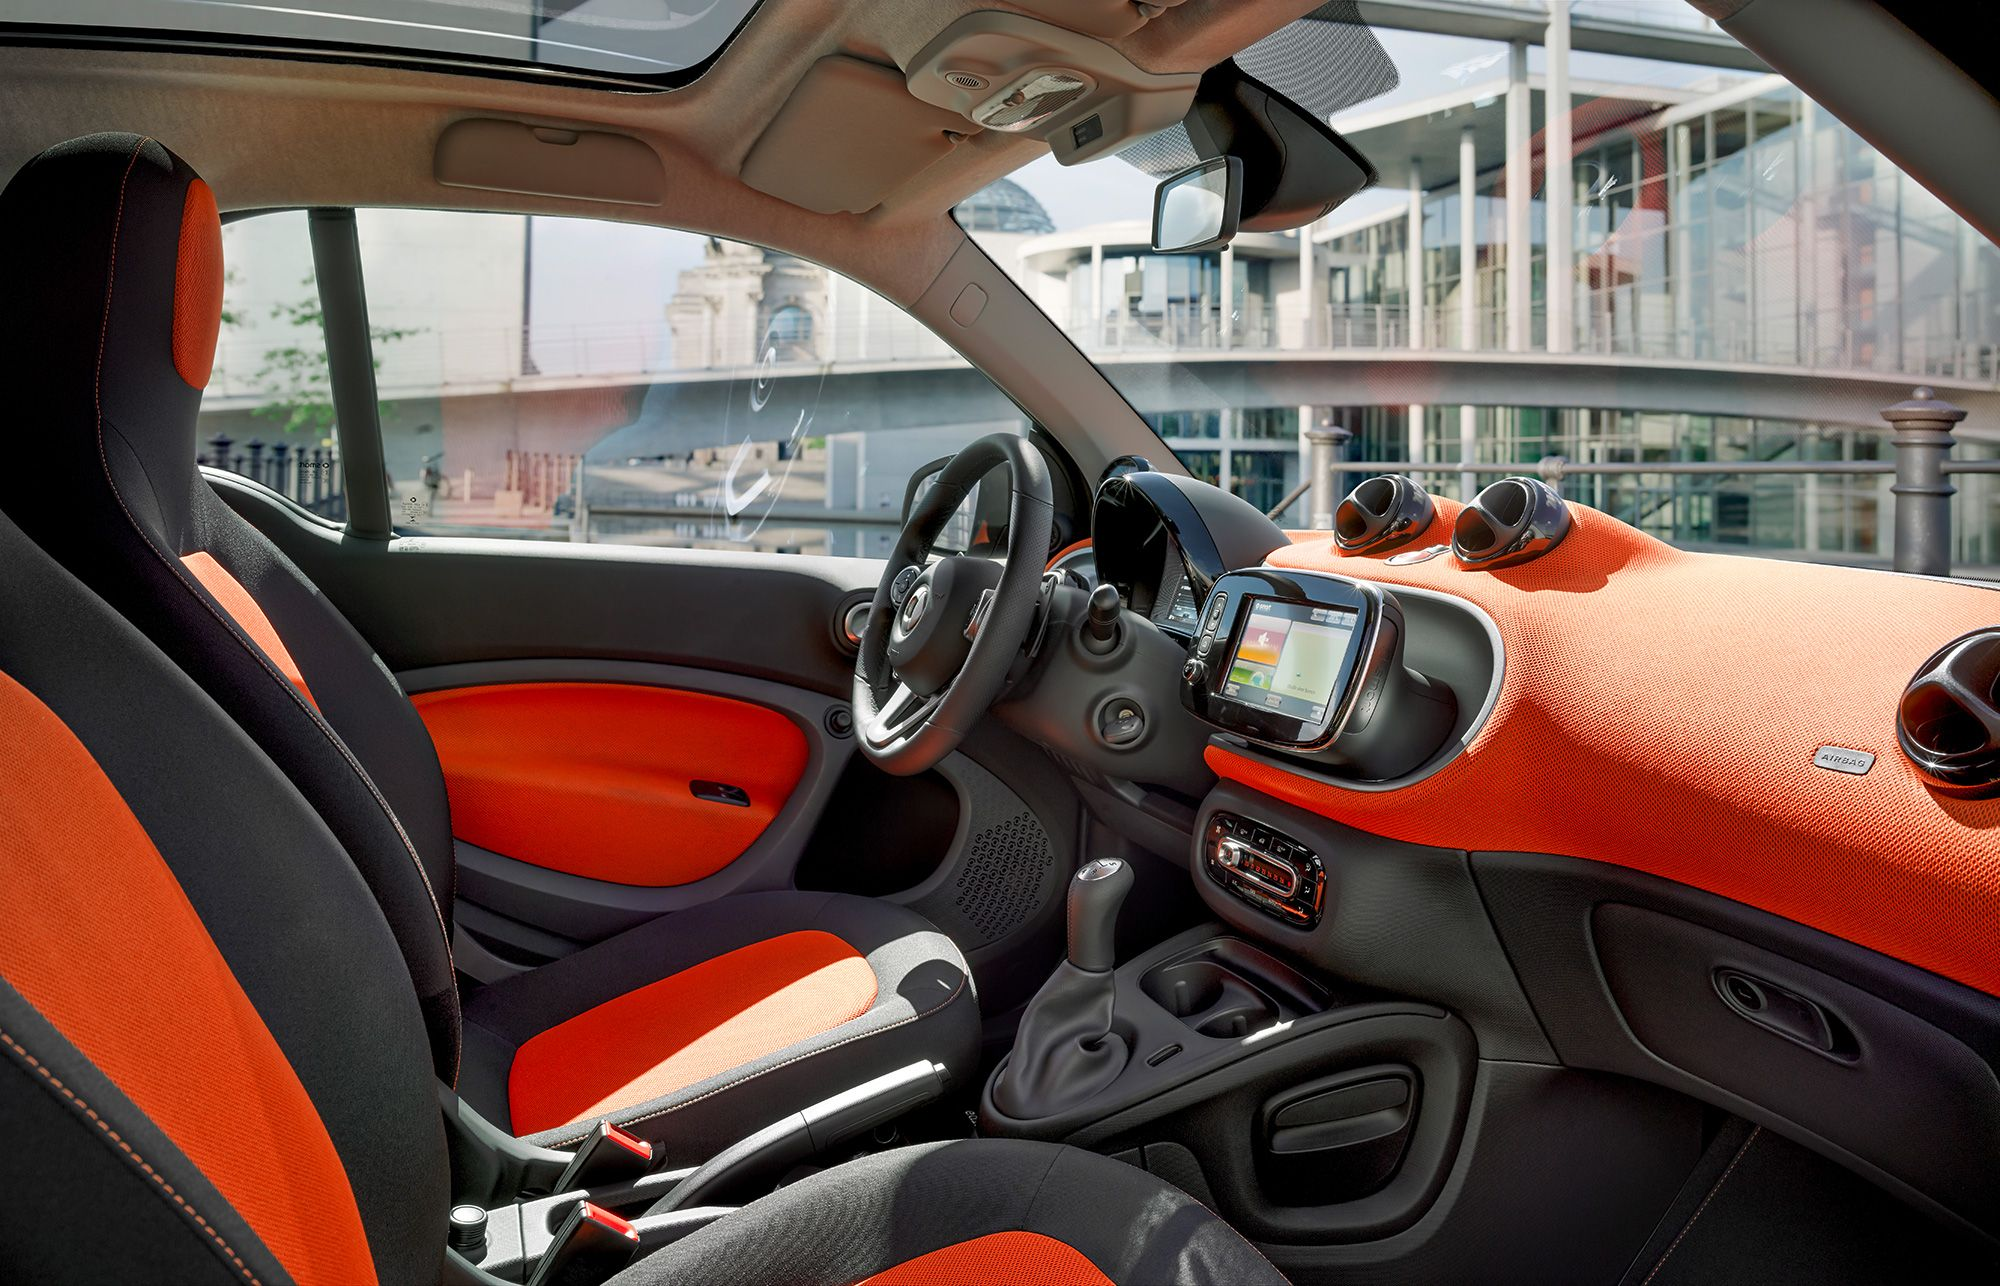 Get Connected The 2016 Smart Fortwo Features State Of The Art In